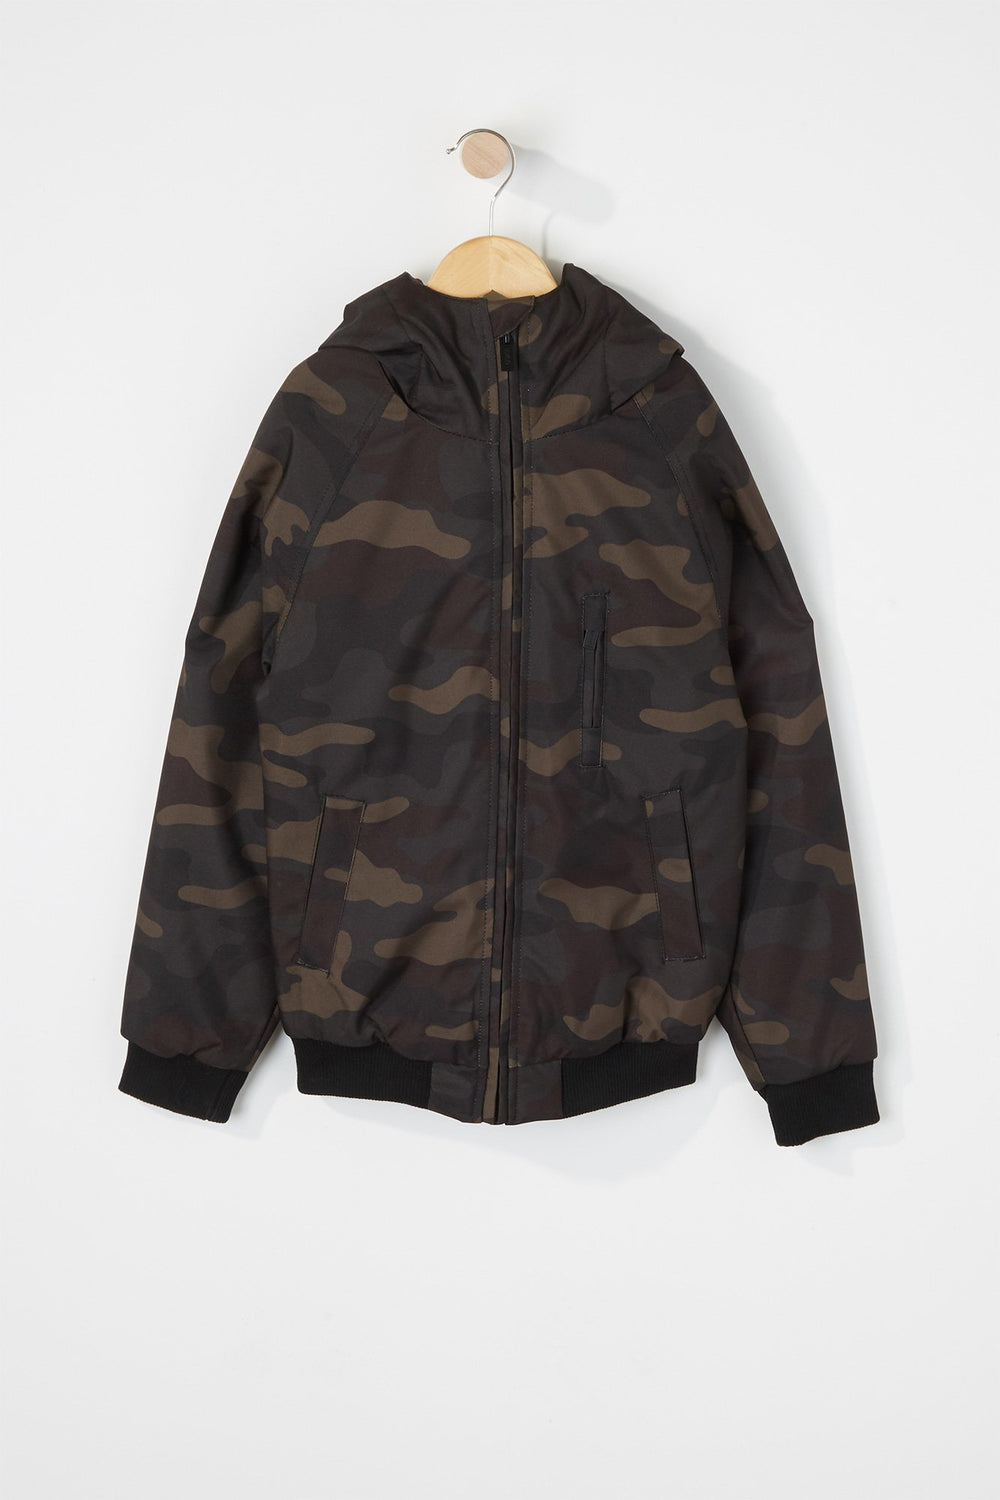 West49 Boys Medium Weight Hooded Jacket Camouflage